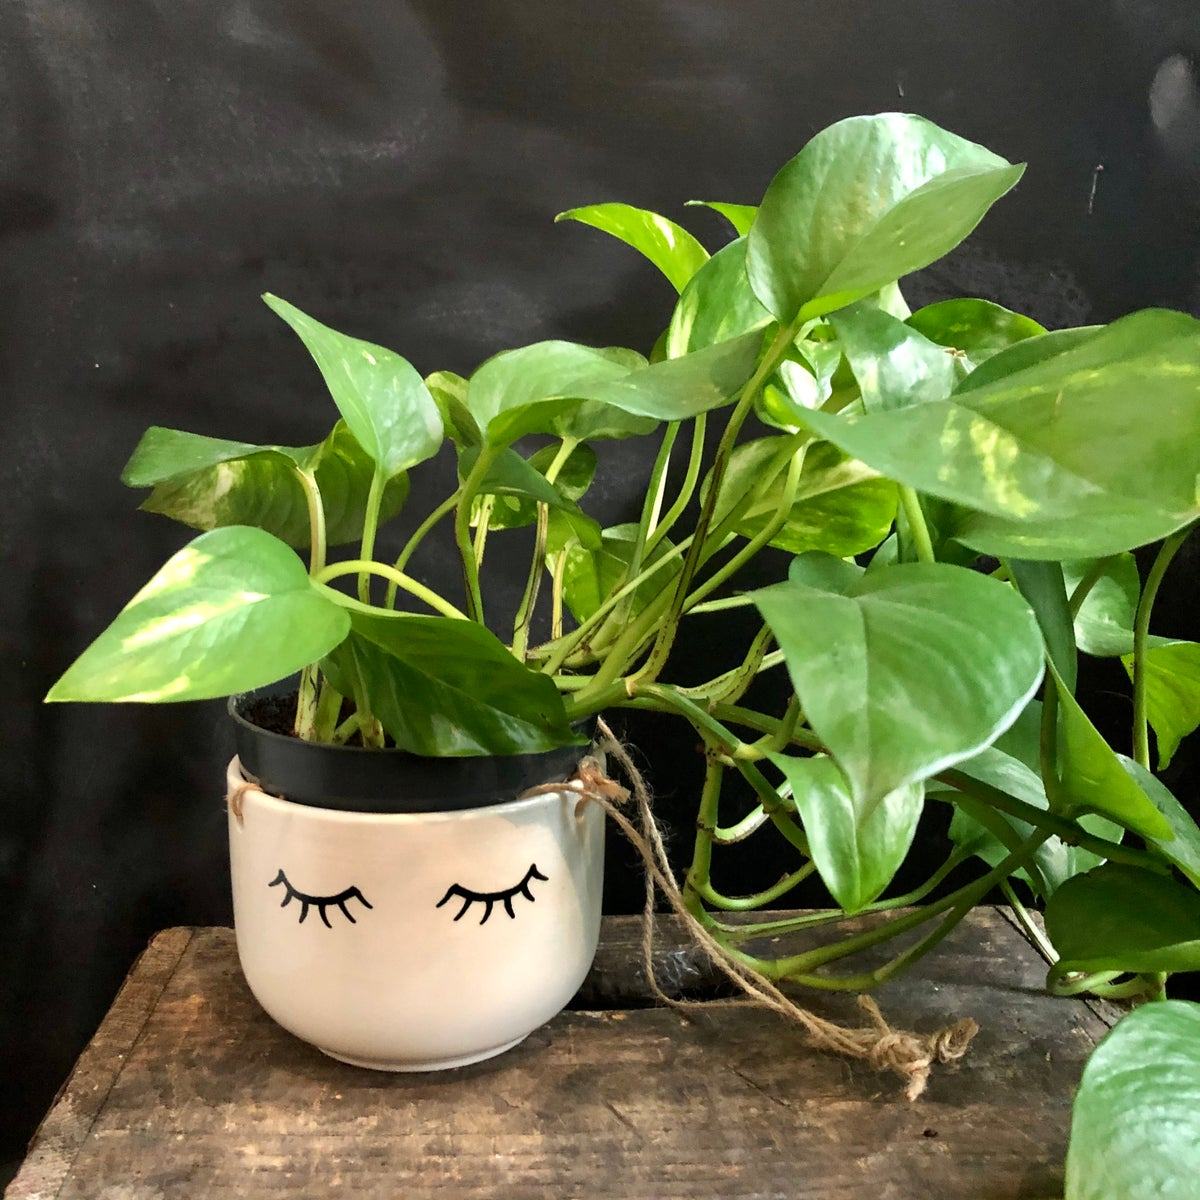 Cute eyes shut hanging plant pot